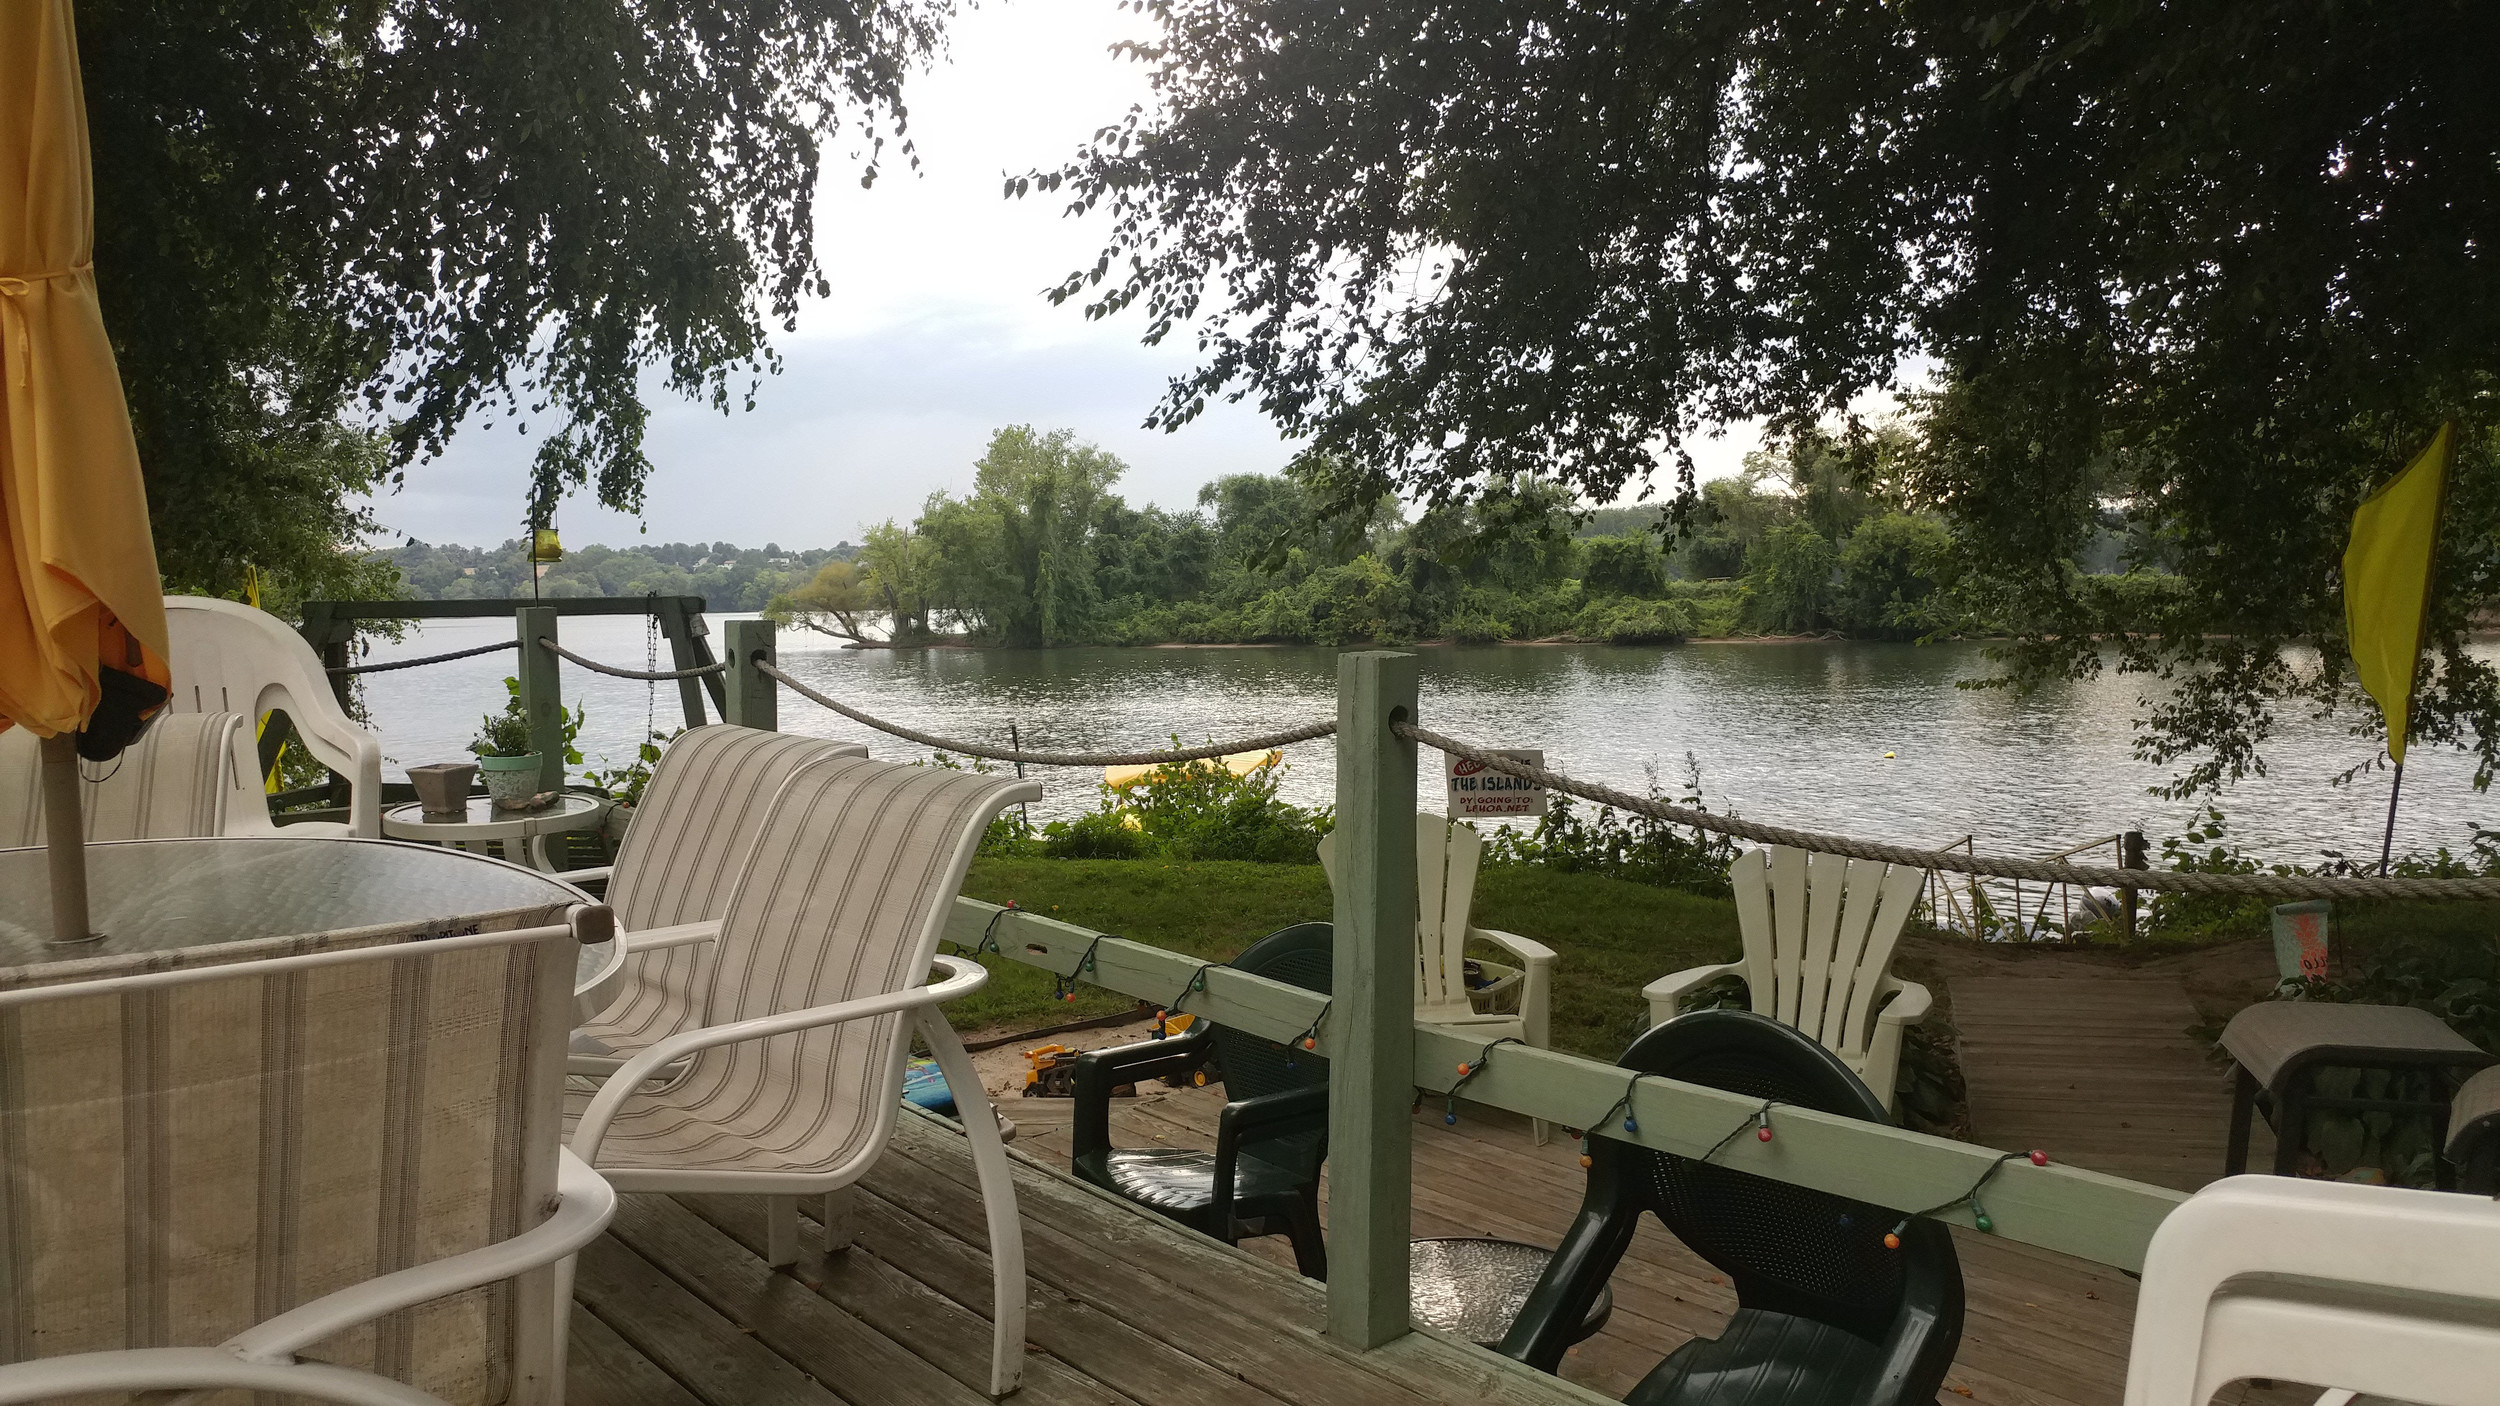 The view from the front deck of Lisa Milbrand's parents' residence on Shelly Island. Milbrand, her parents and others will have to vacate the islands by October 2019, per a decision by Londonderry Tonwship to continue to receive insurance and other financial aid.